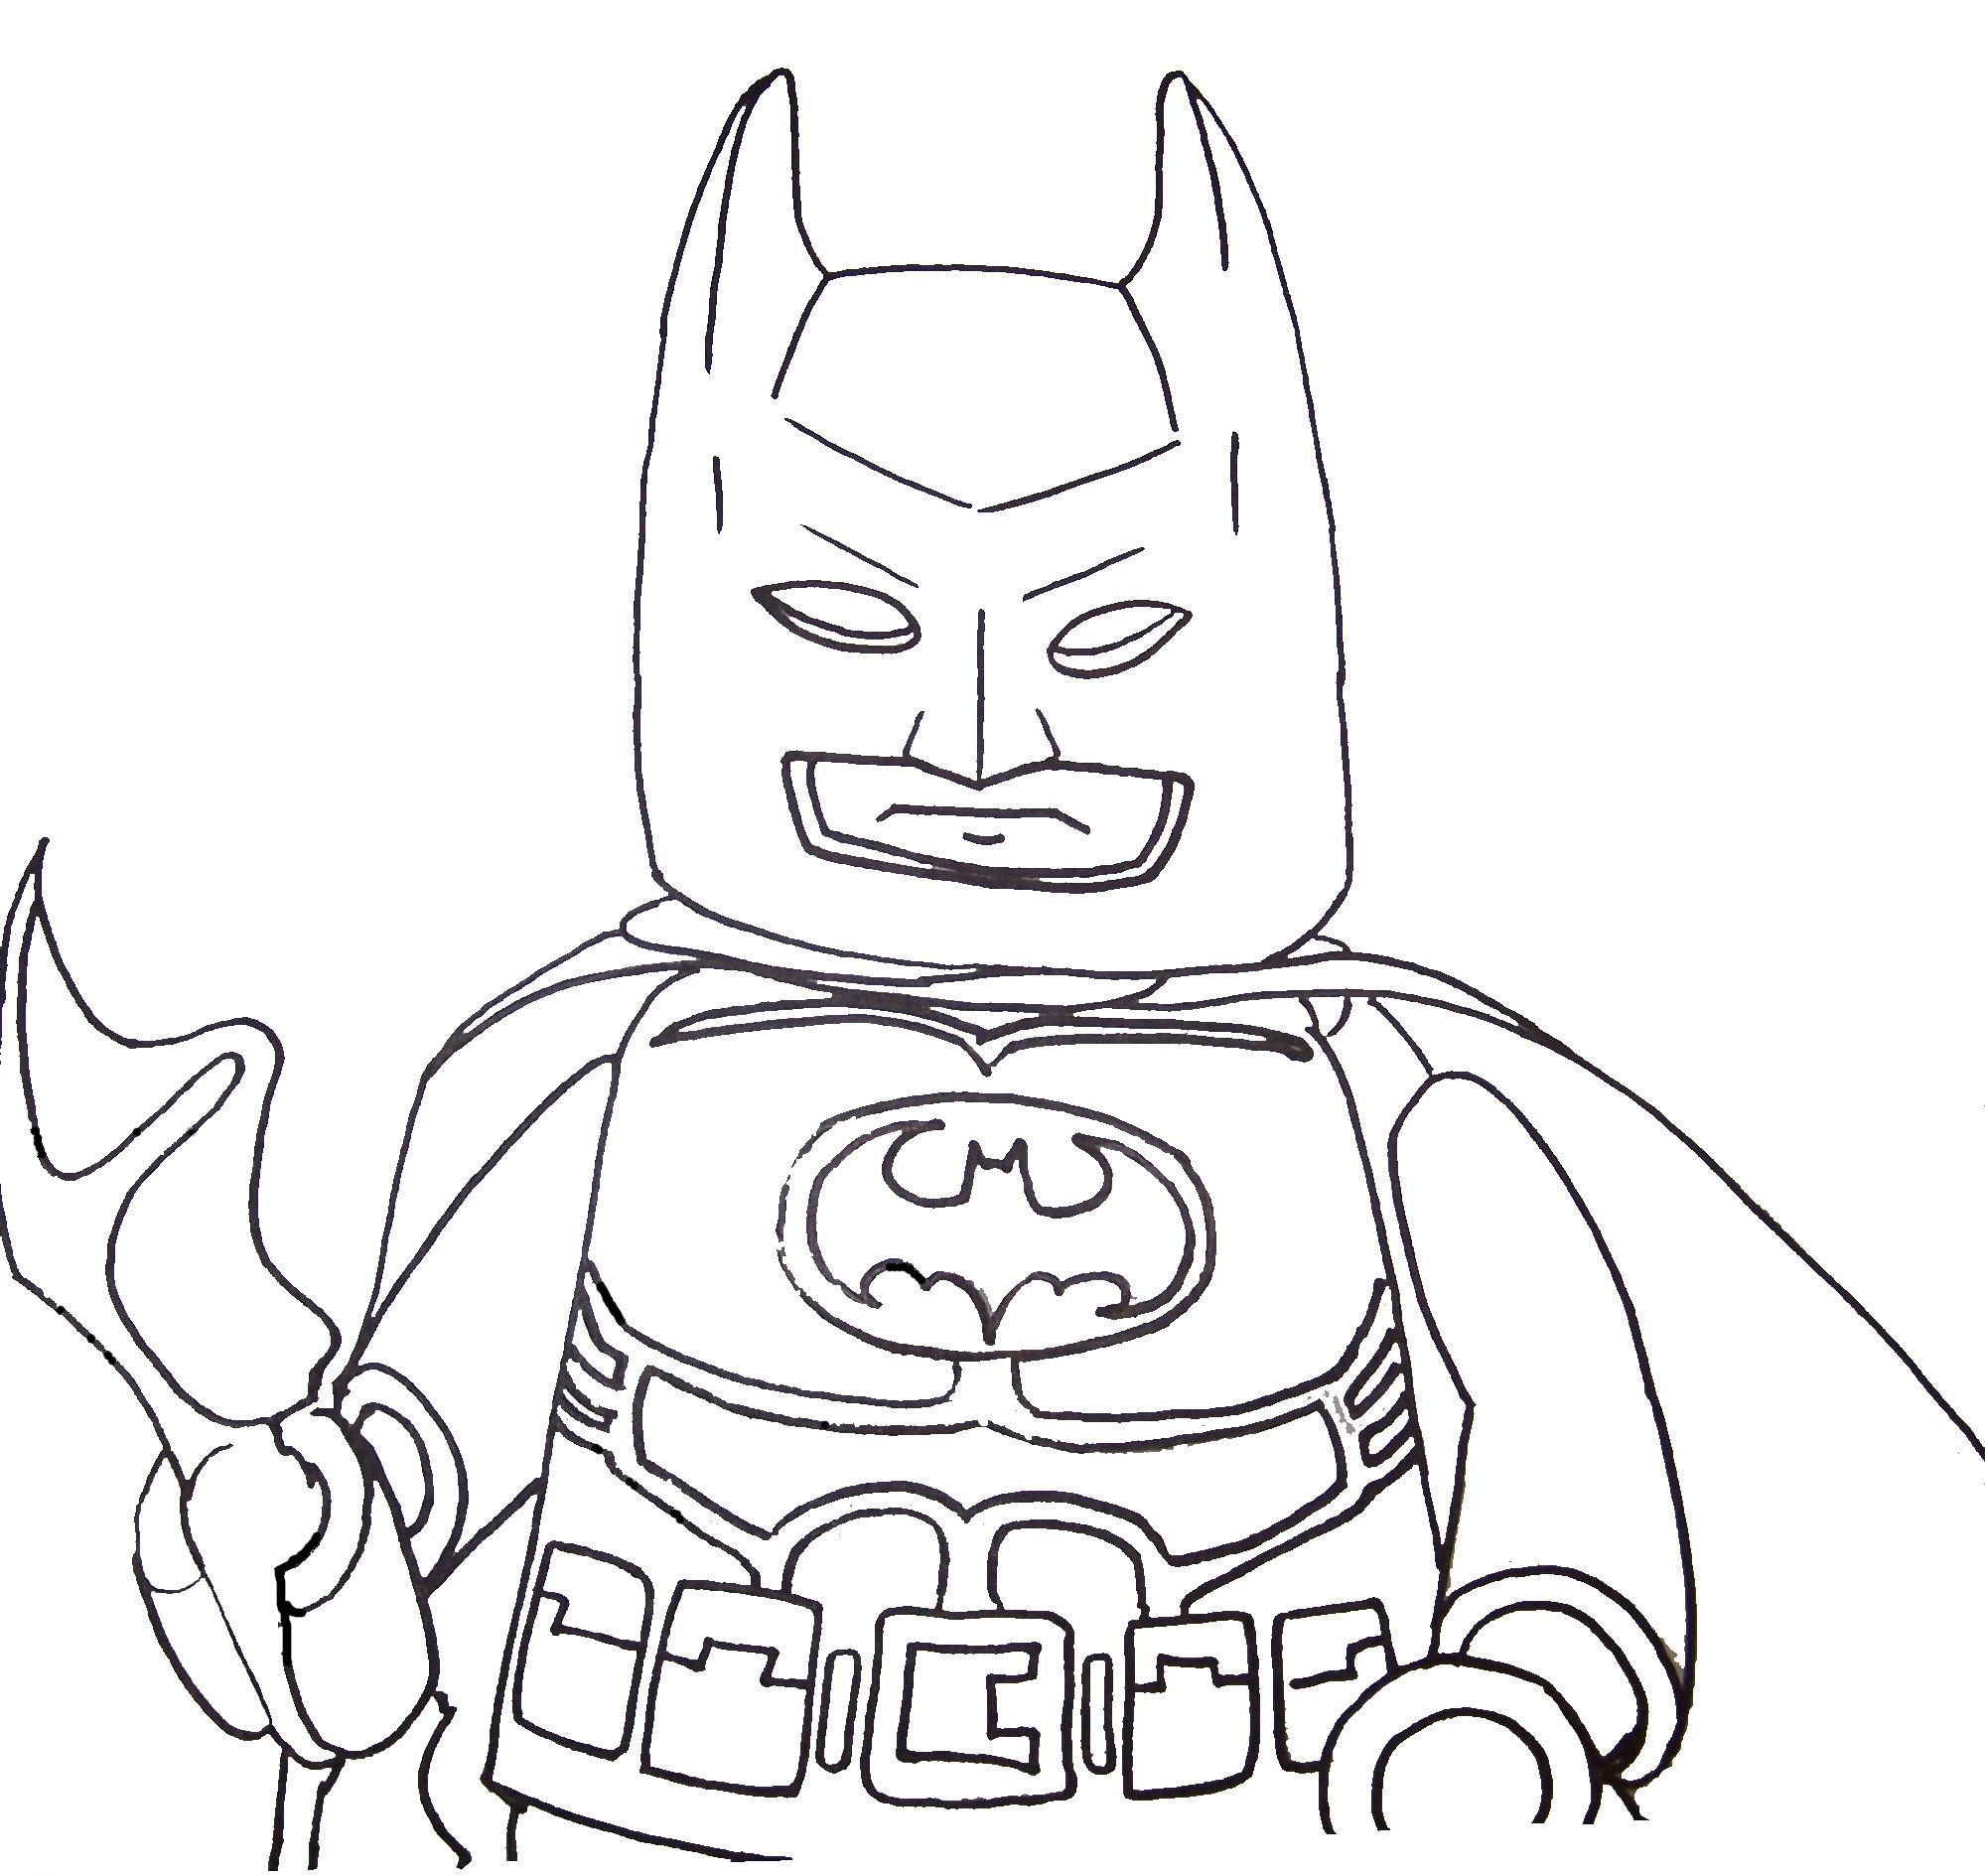 Printable coloring pages batman - Fun Free Printable Coloring Pages For Boys And Girls Printable Coloringpages